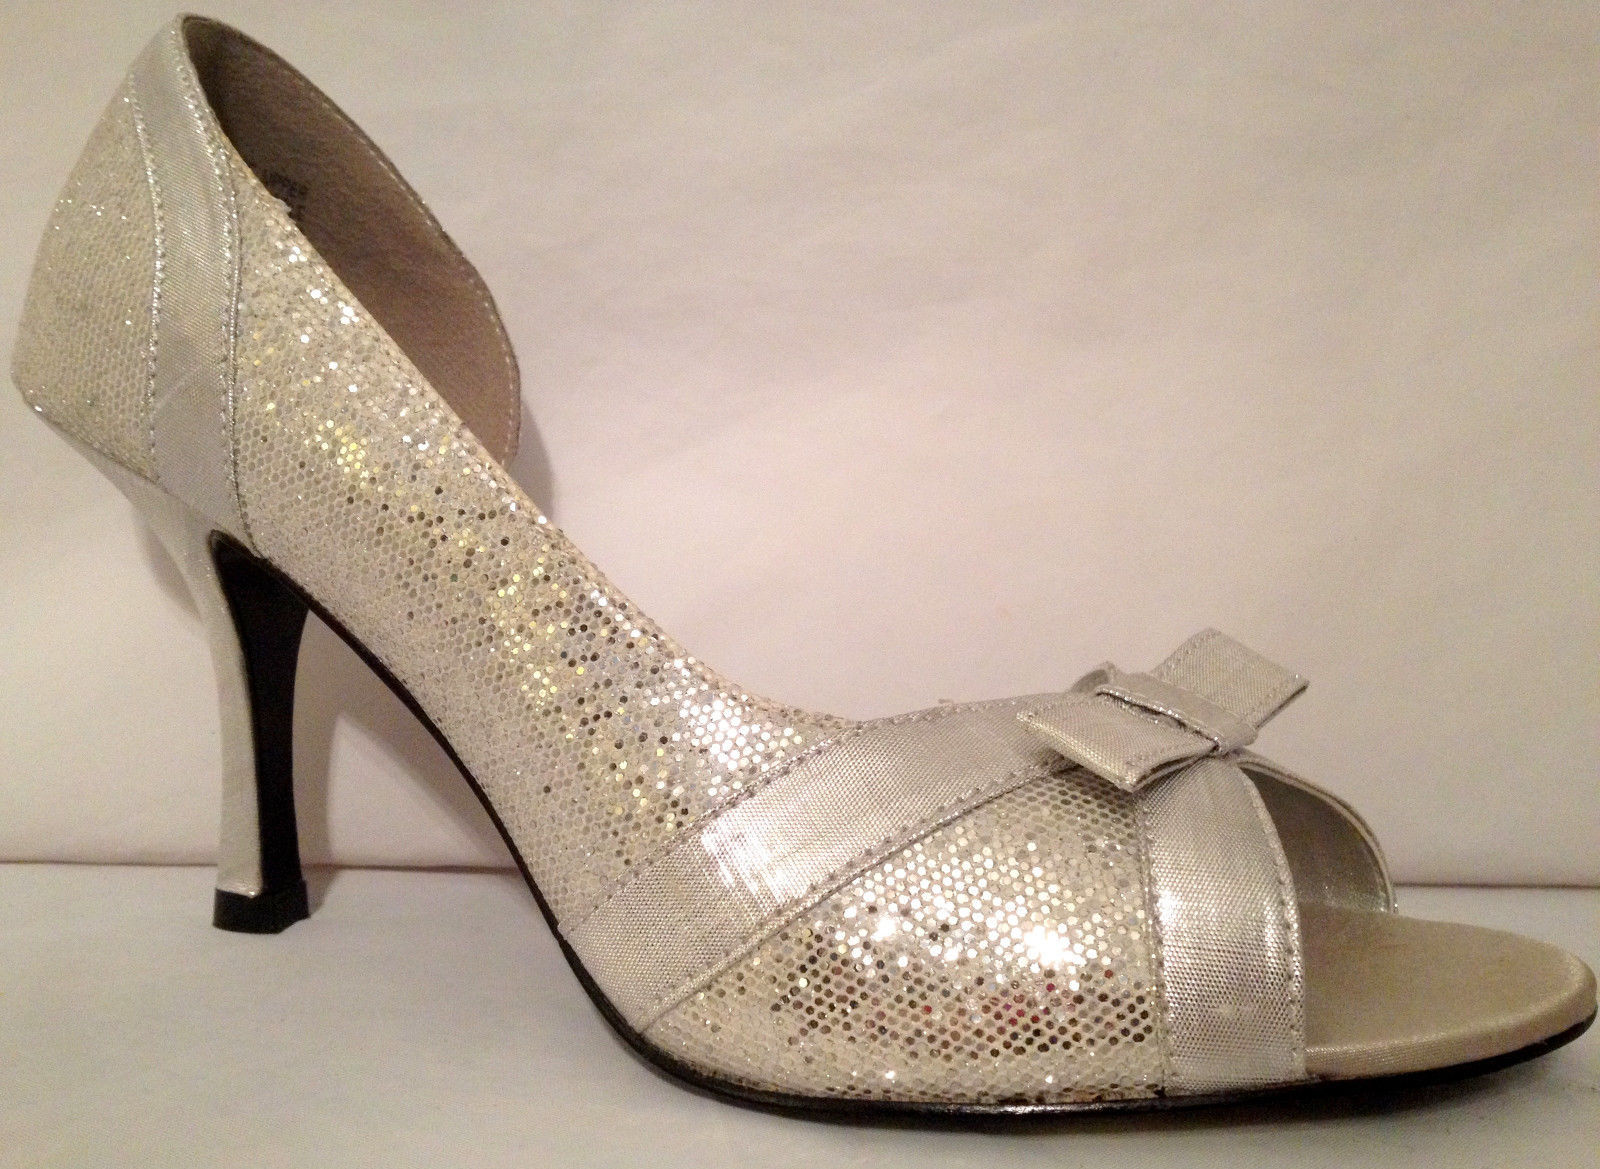 bac0835e80e S l1600. S l1600. Previous. New Unlisted Kenneth Cole Size 10 M Silver  Sparkle High Heel Open Toe Women Shoe · New Unlisted Kenneth ...